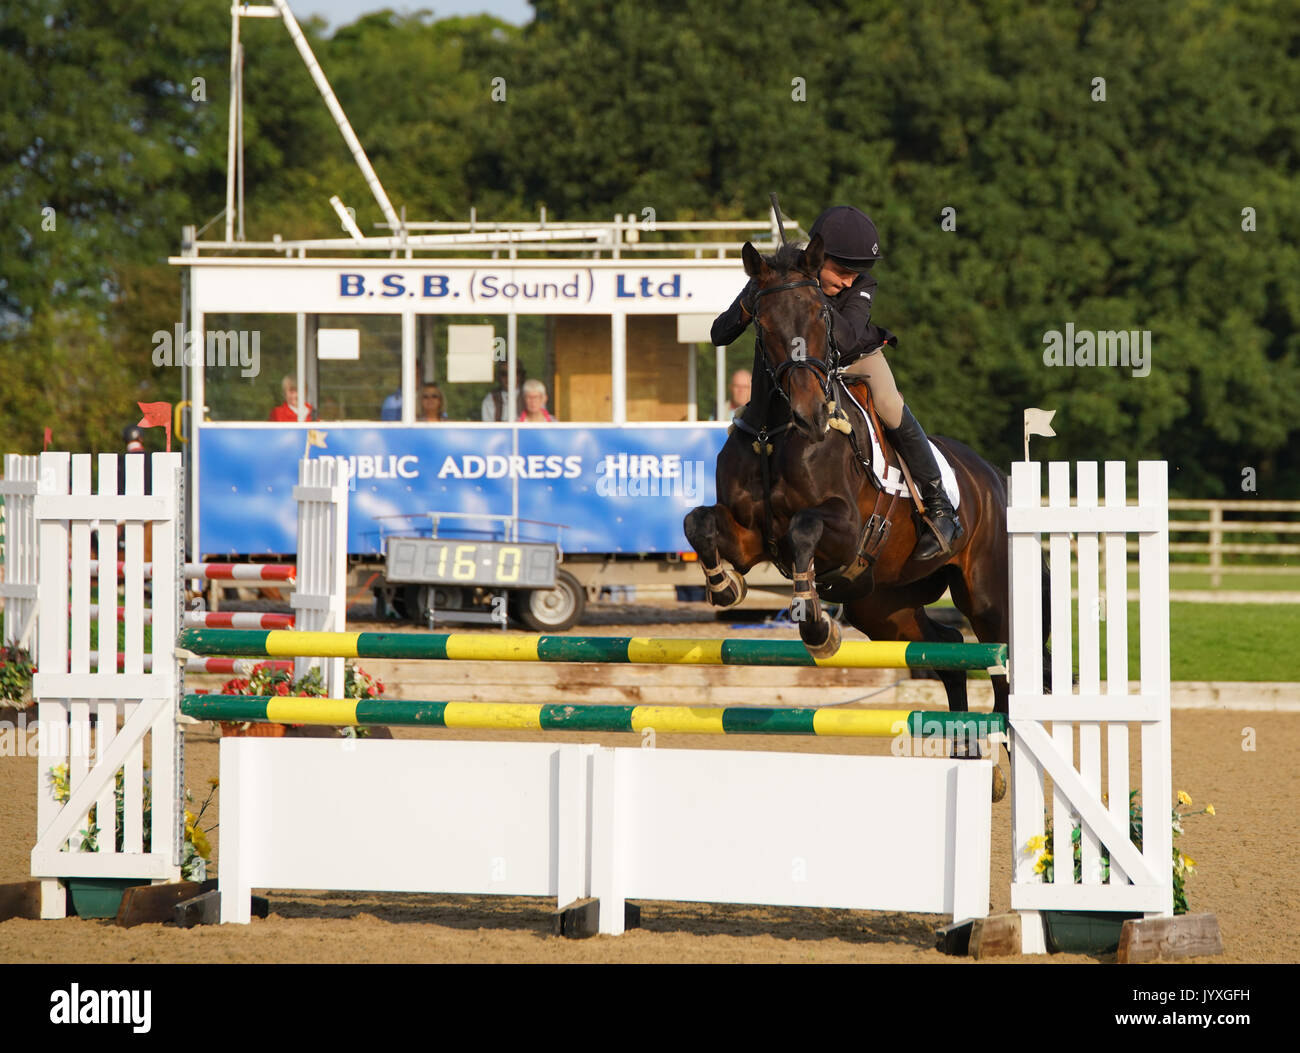 Congleton, UK. 20th Aug, 2017. Somerford Park International horse trials, Sunday, day 3, riders compete in the British eventing CIC* and CIC** Show jumping and cross country. Credit: Scott Carruthers/Alamy Live News - Stock Image